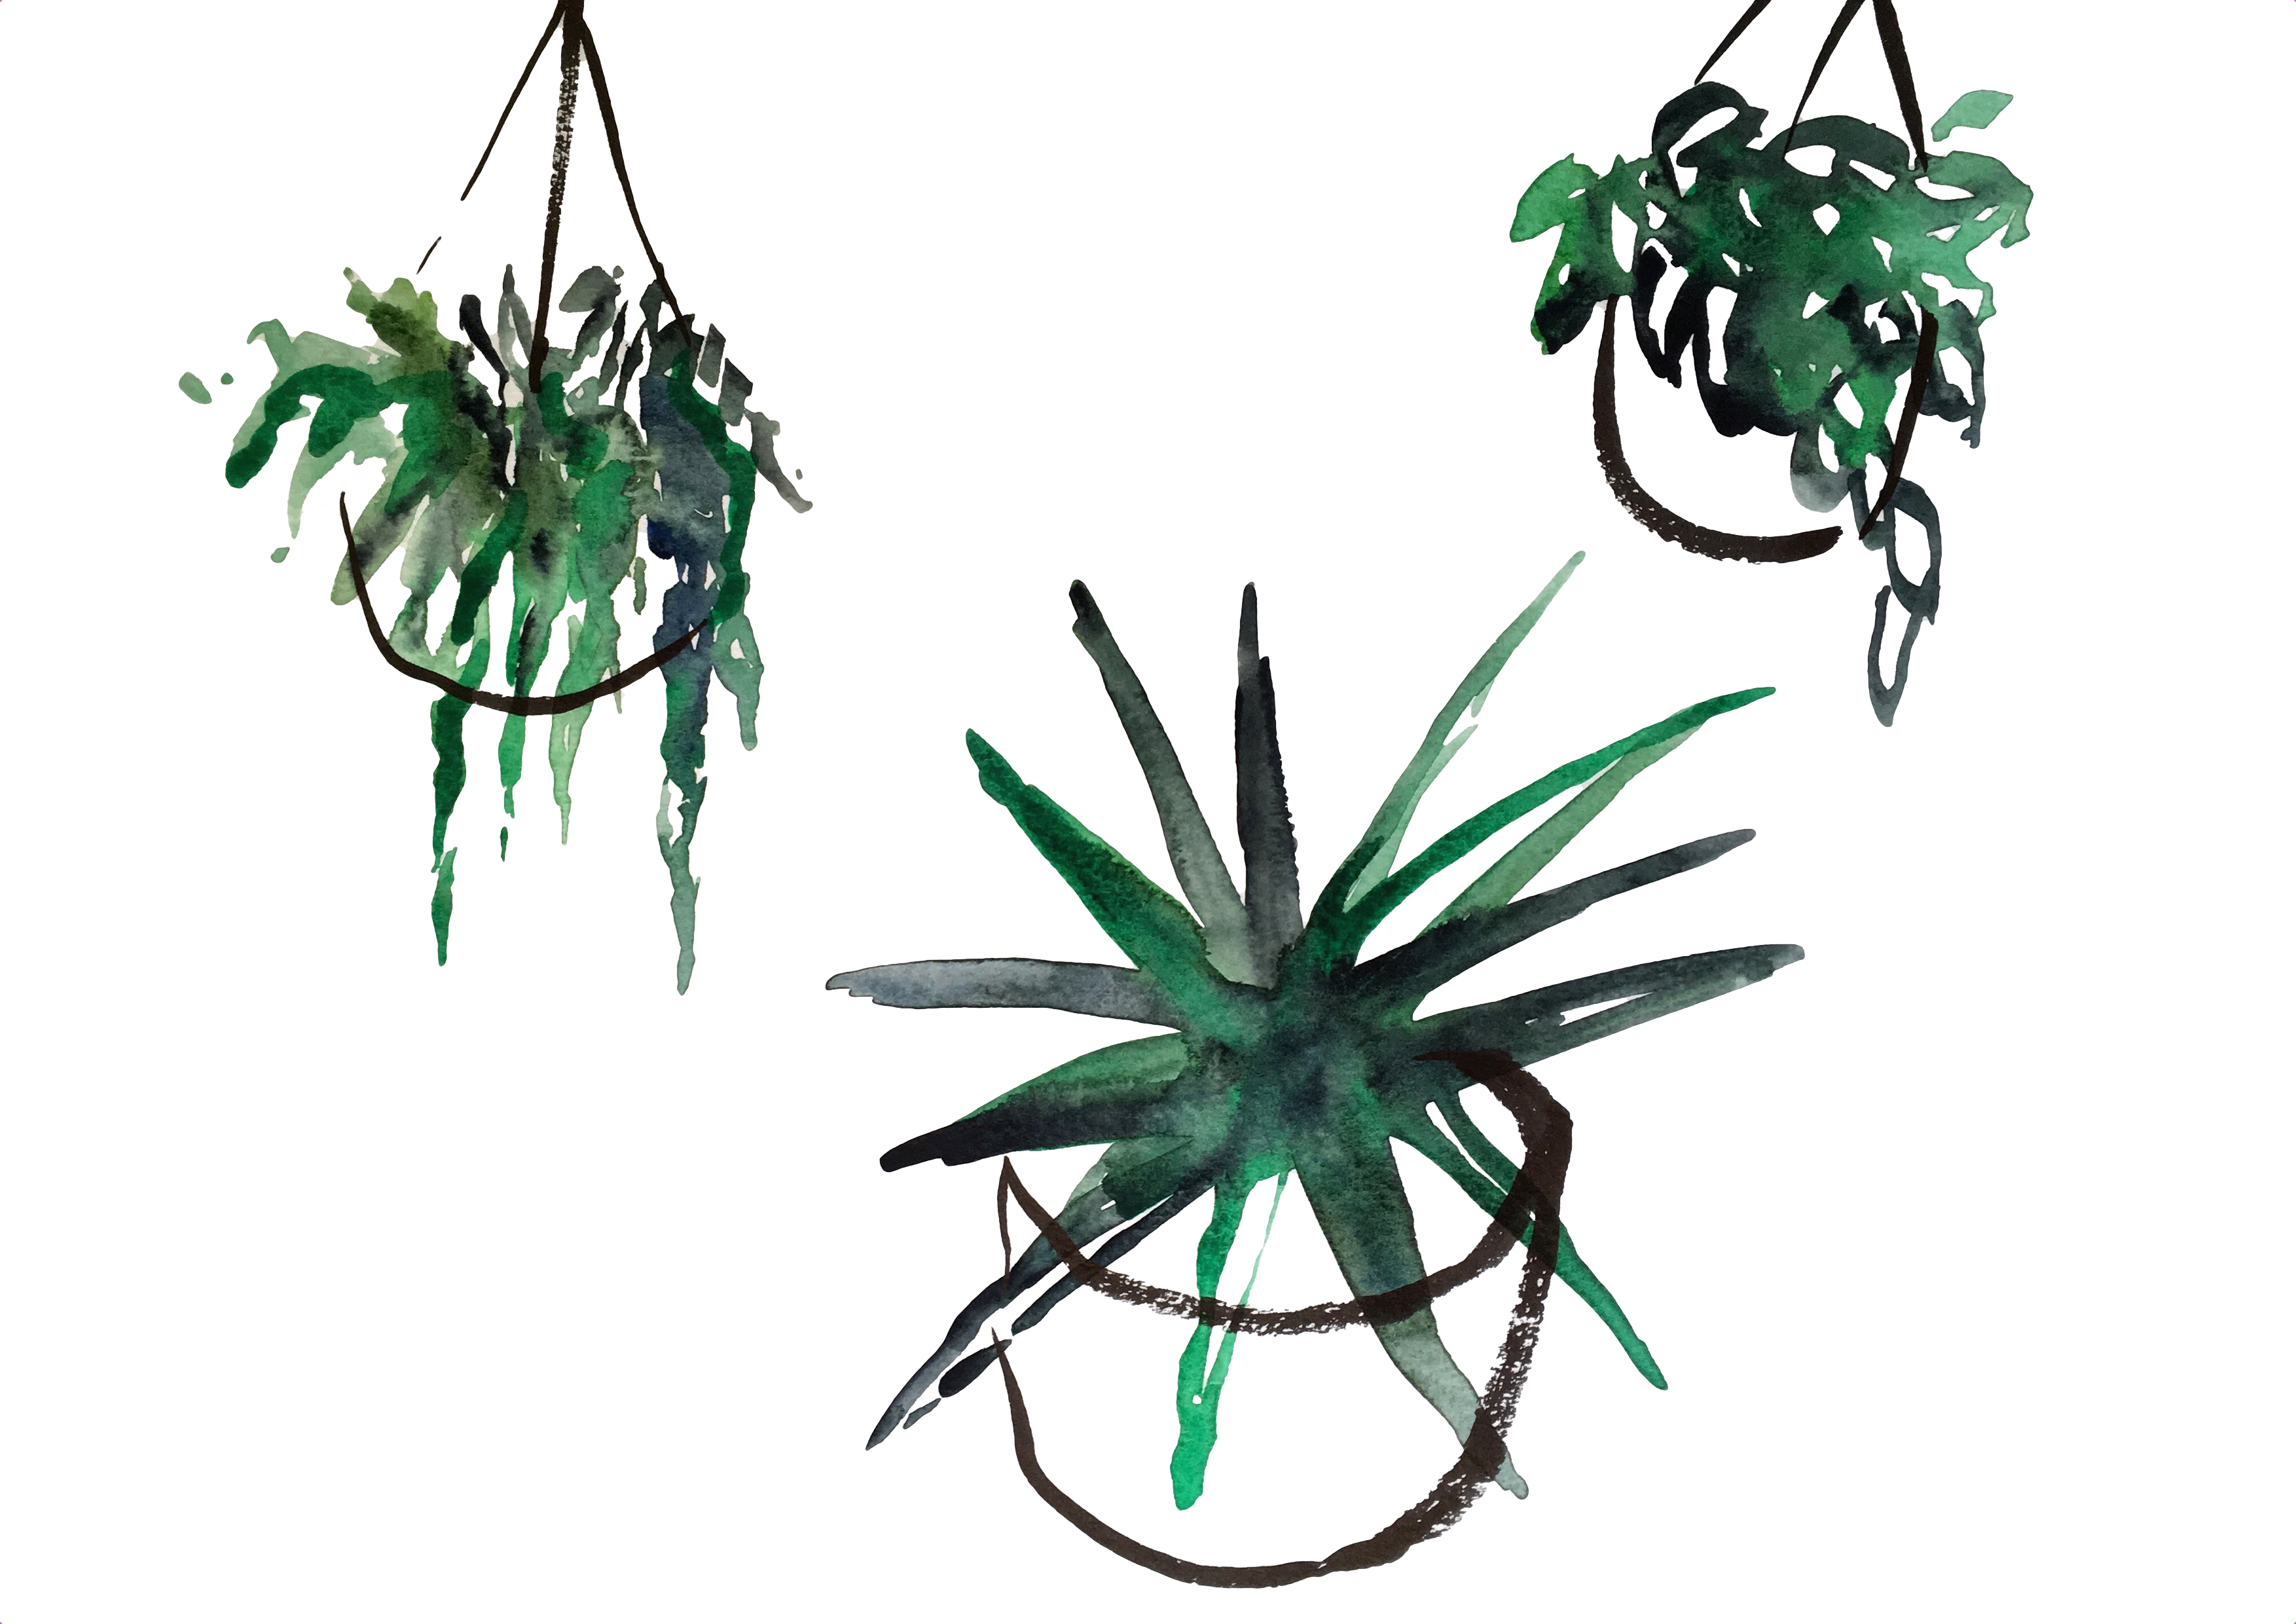 Hanging planters and aloe